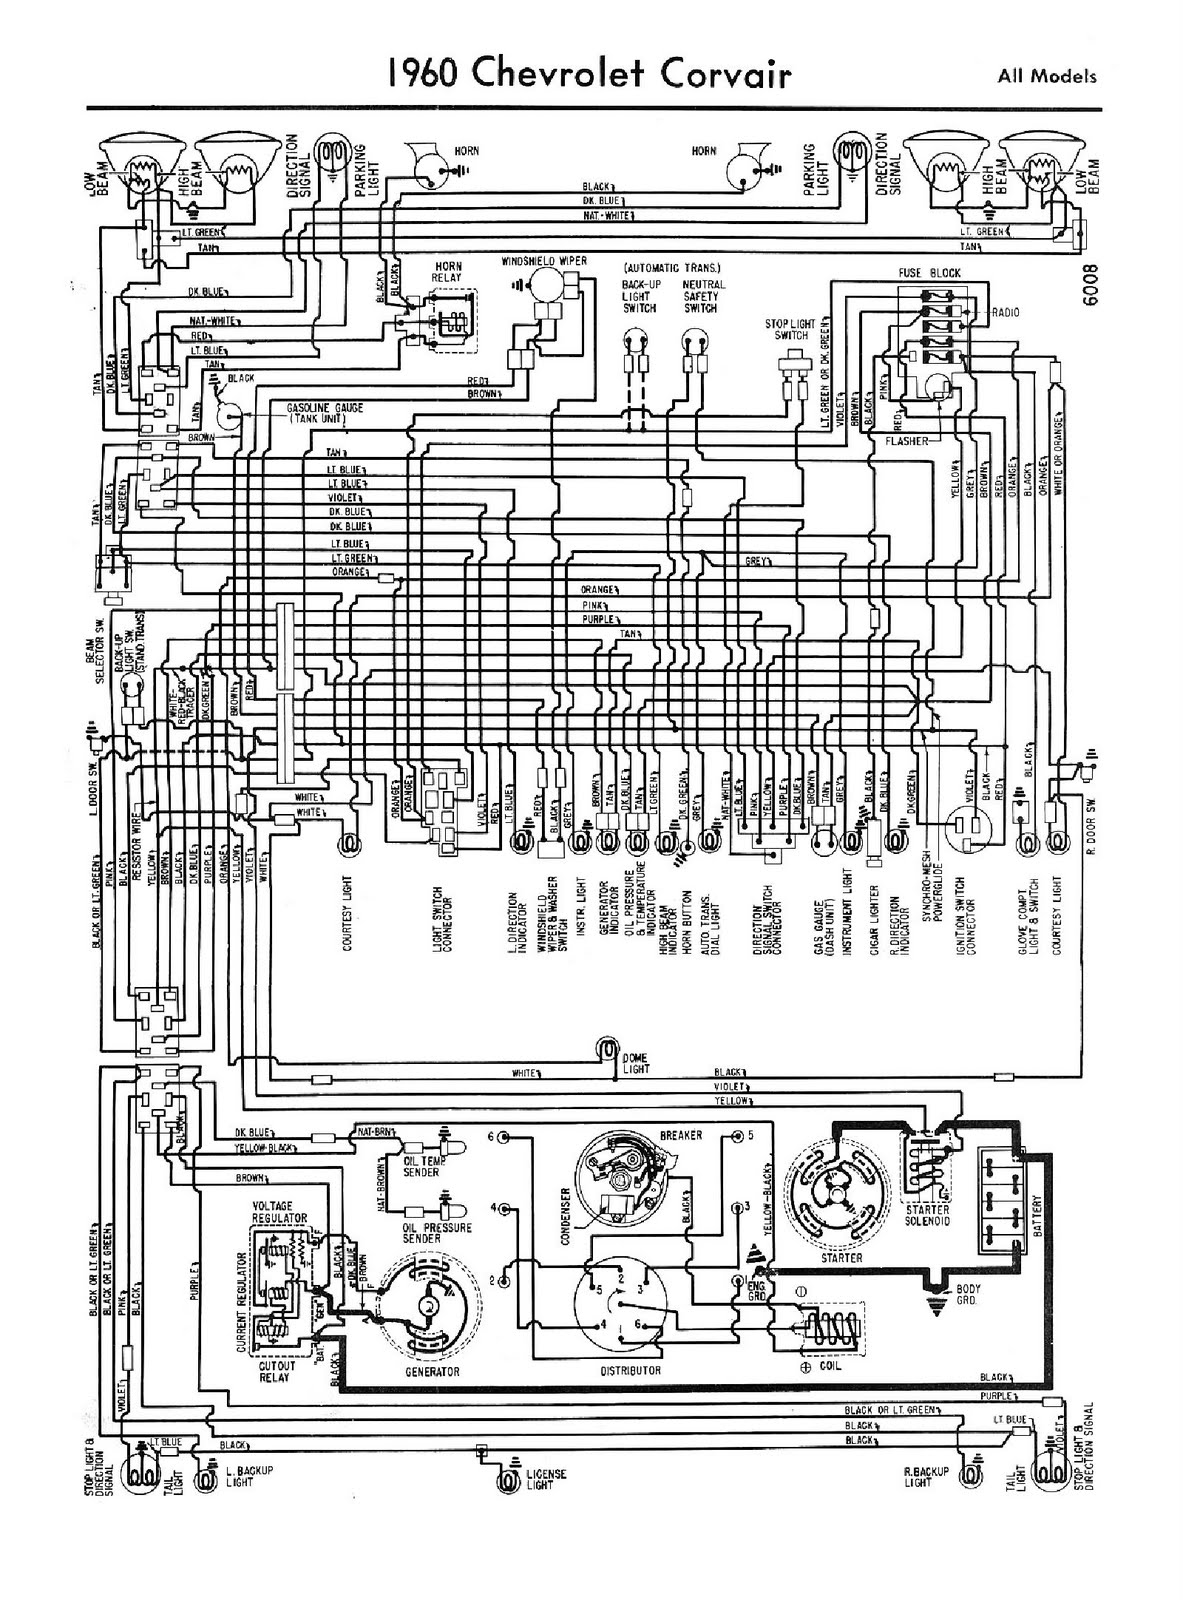 1960 Impala Wiring Diagram Free For You 1959 Chevy Auto Chevrolet Corvair